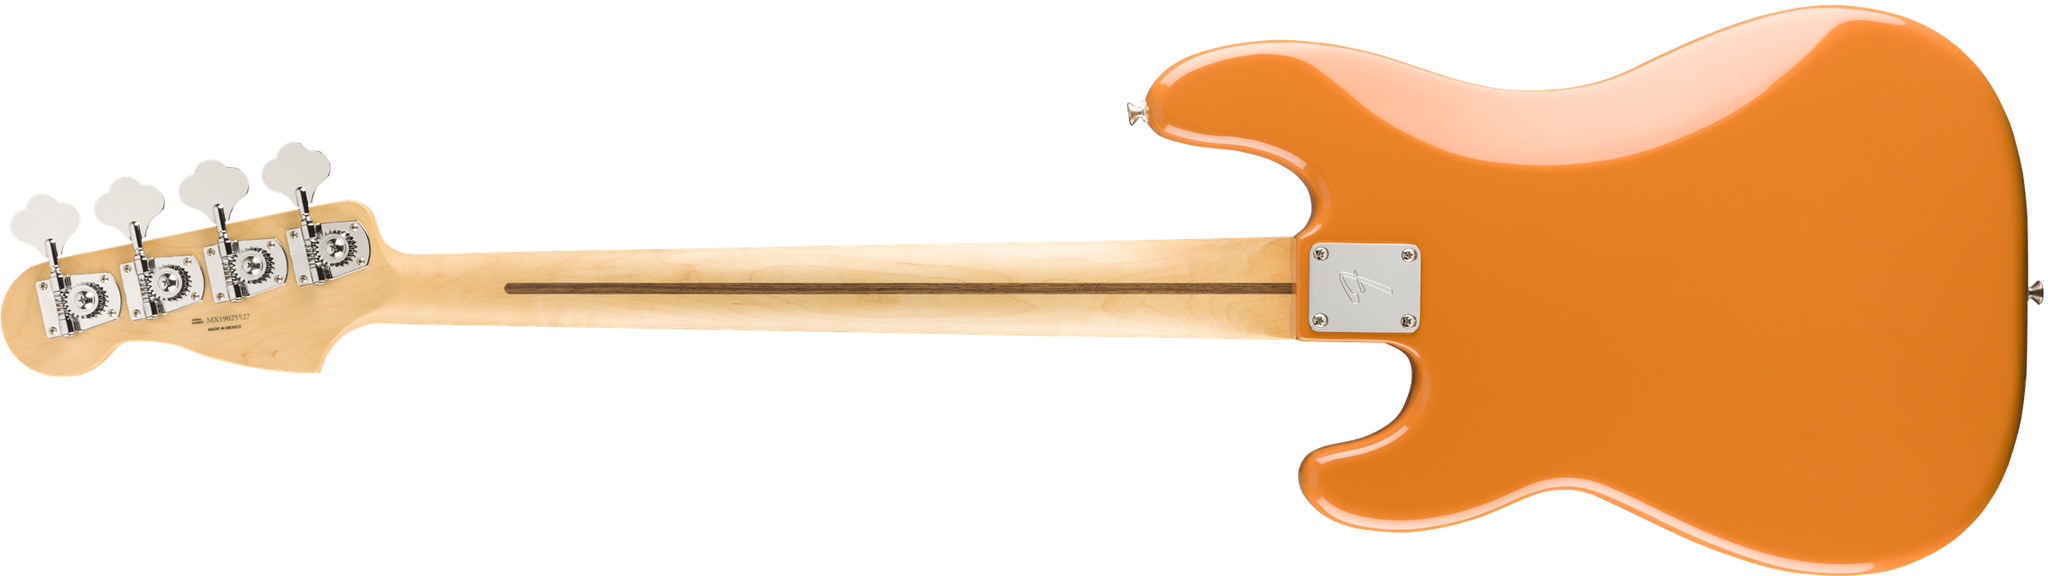 Fender Player Precision Bass Capri Orange